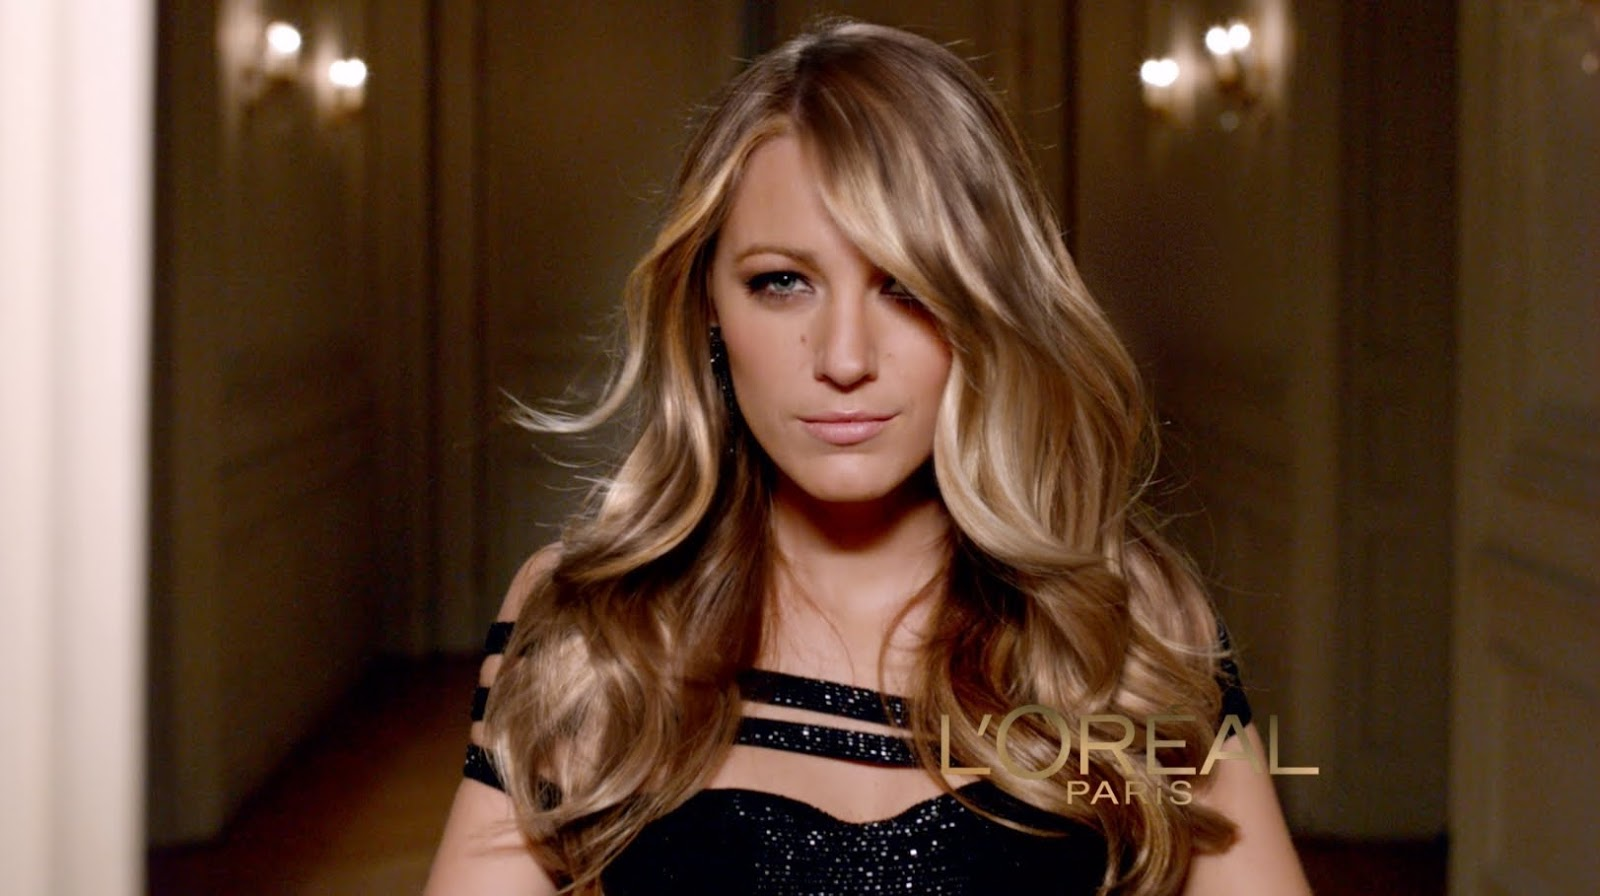 Blake Lively with L'Oreal Paris